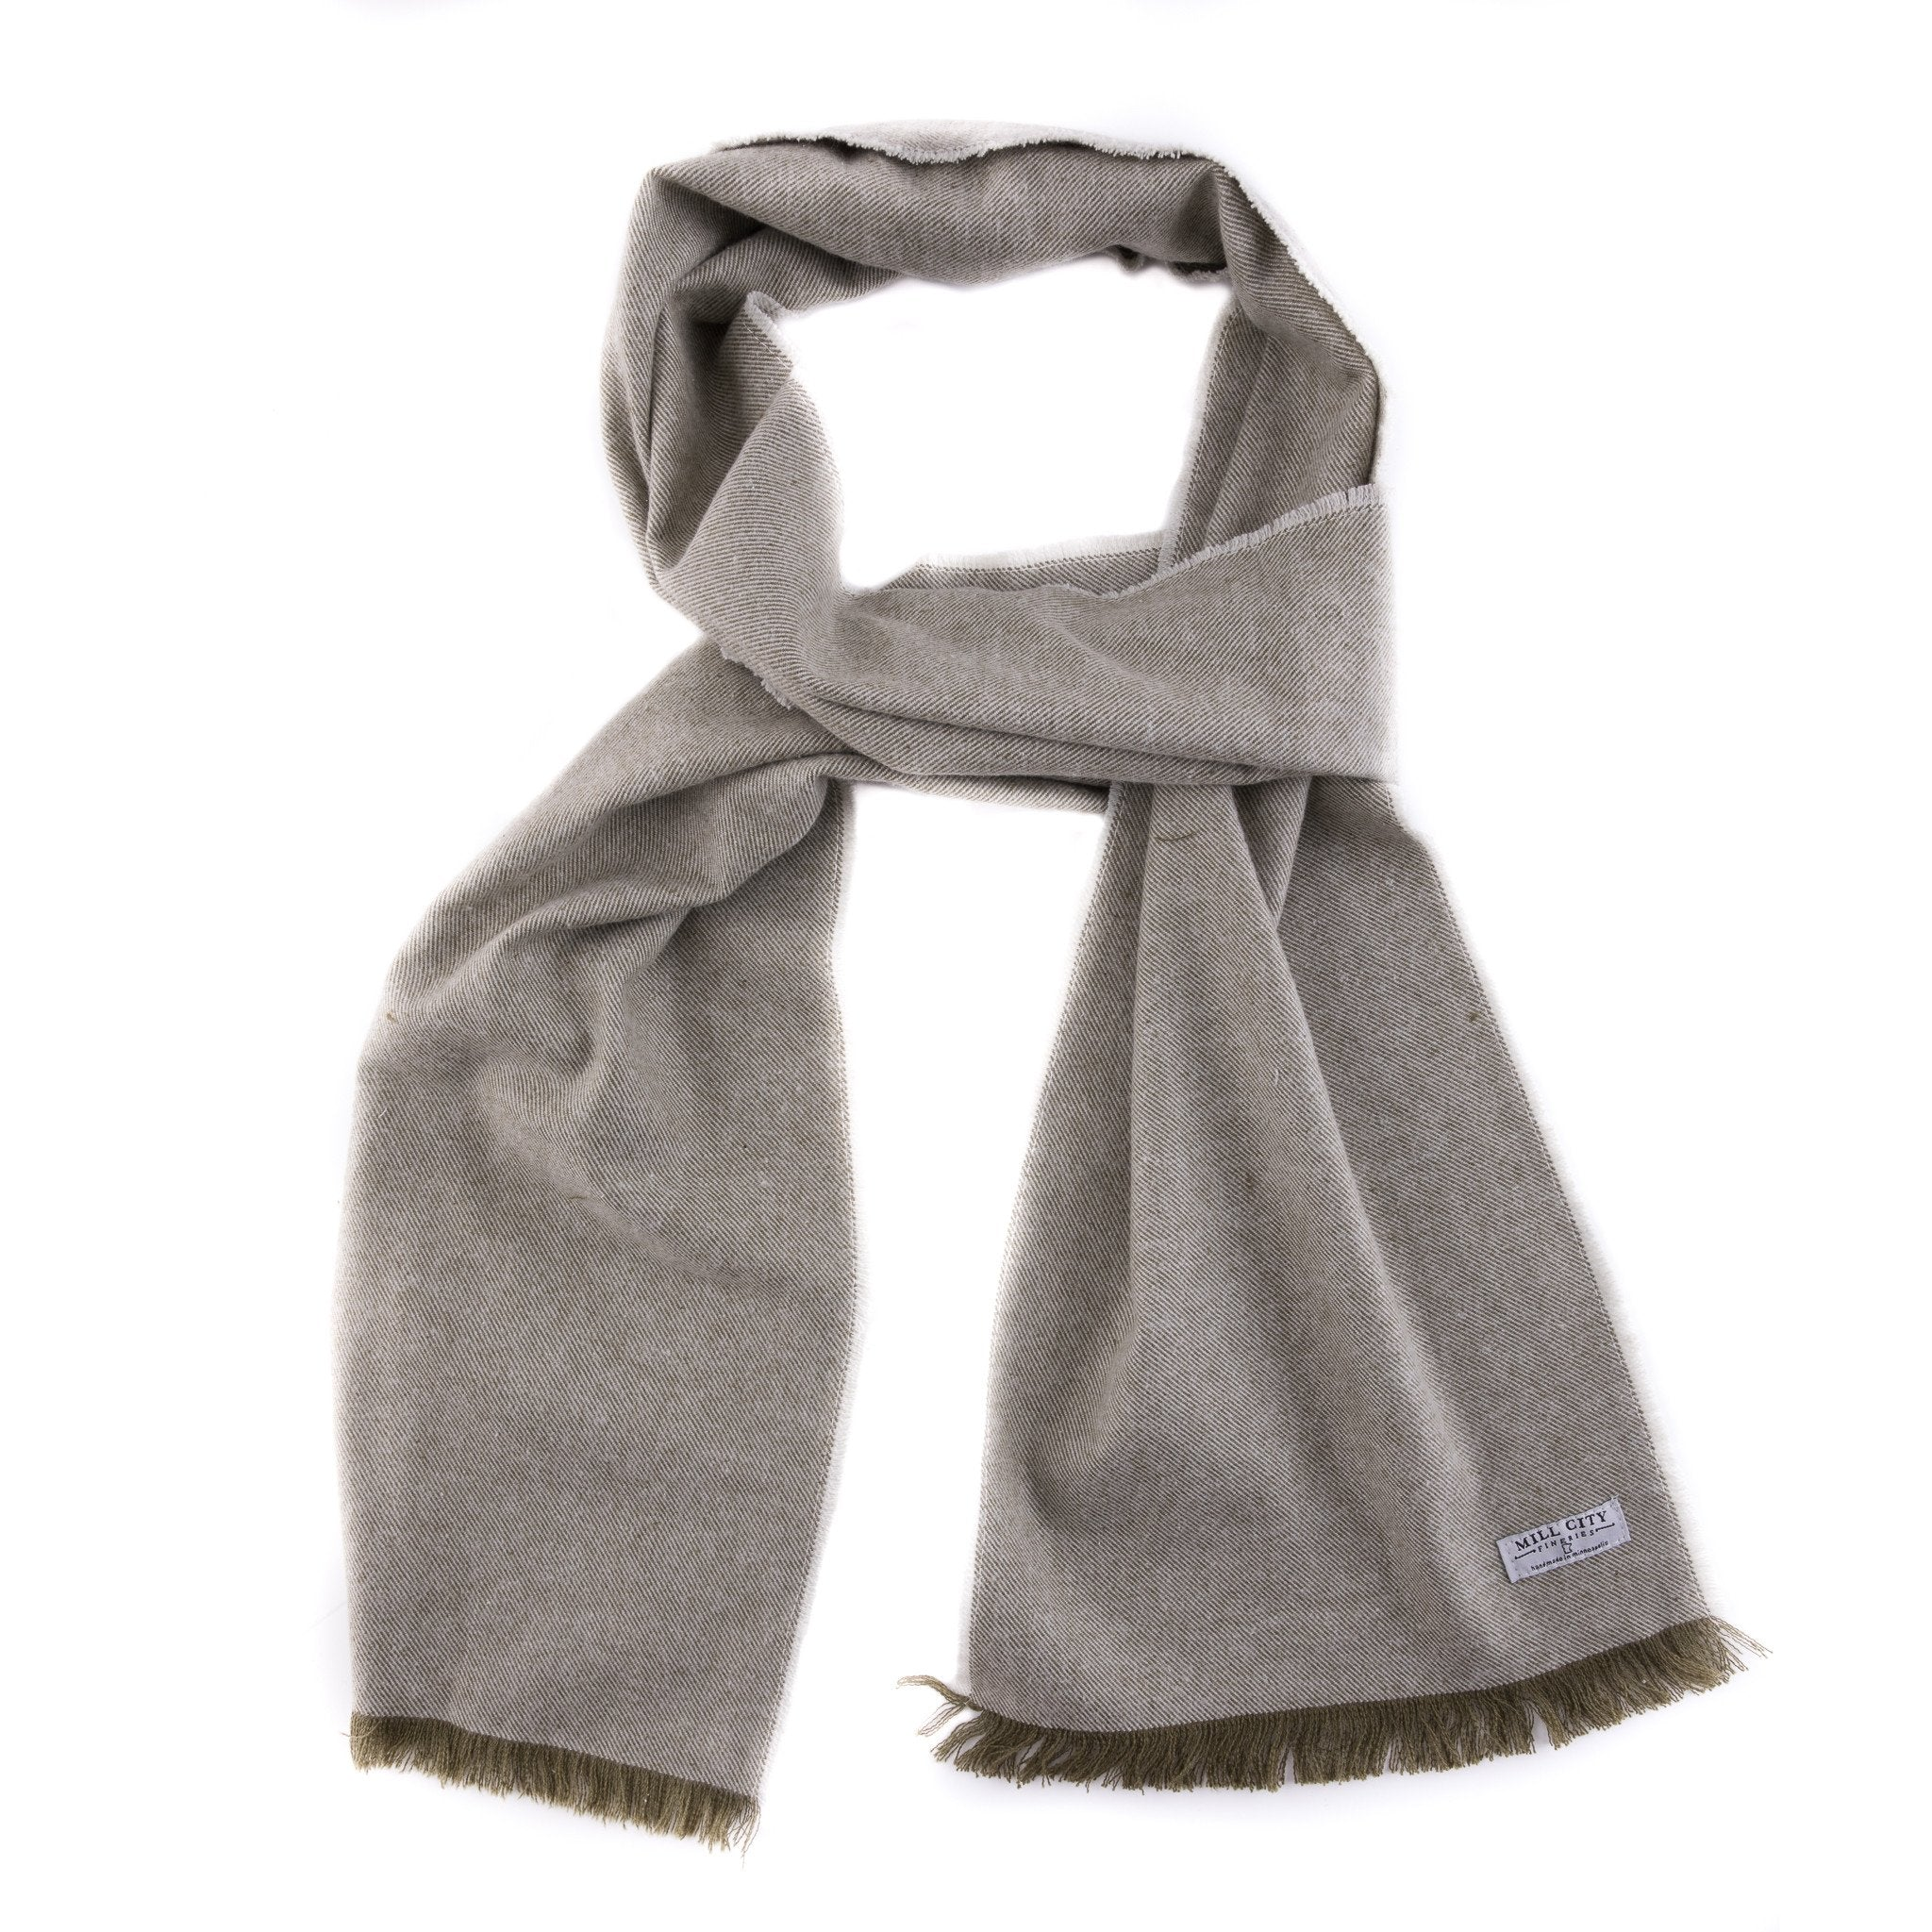 Mill City Fineries Scotch Pine Textured Flannel Scarf